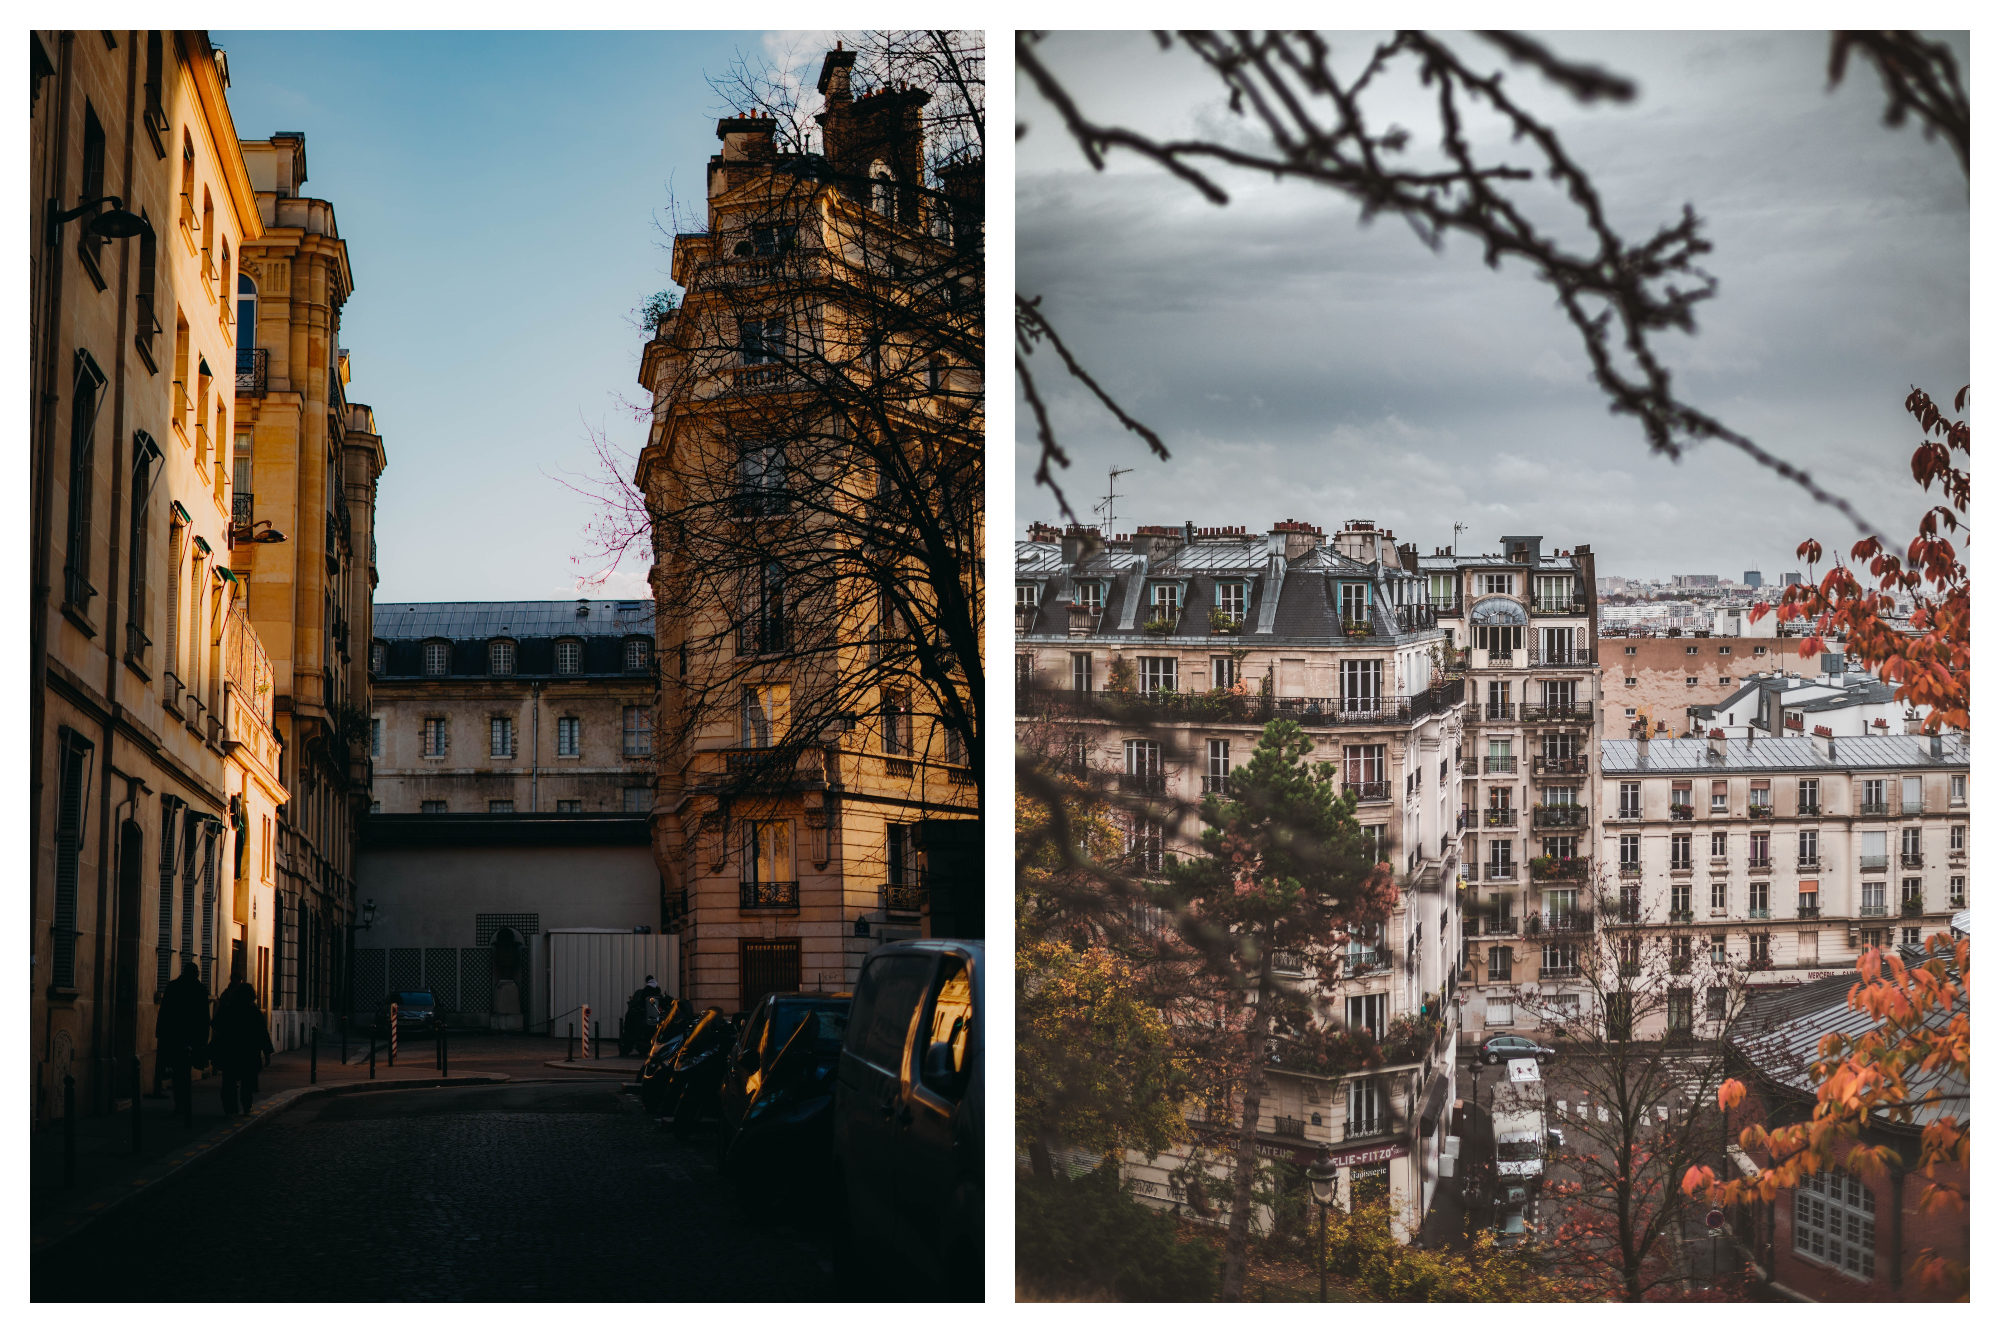 A Paris street corner of stone buildings lit up by the last of the day's sun rays (left). A view of Parisian stone buildings in the winter (right).